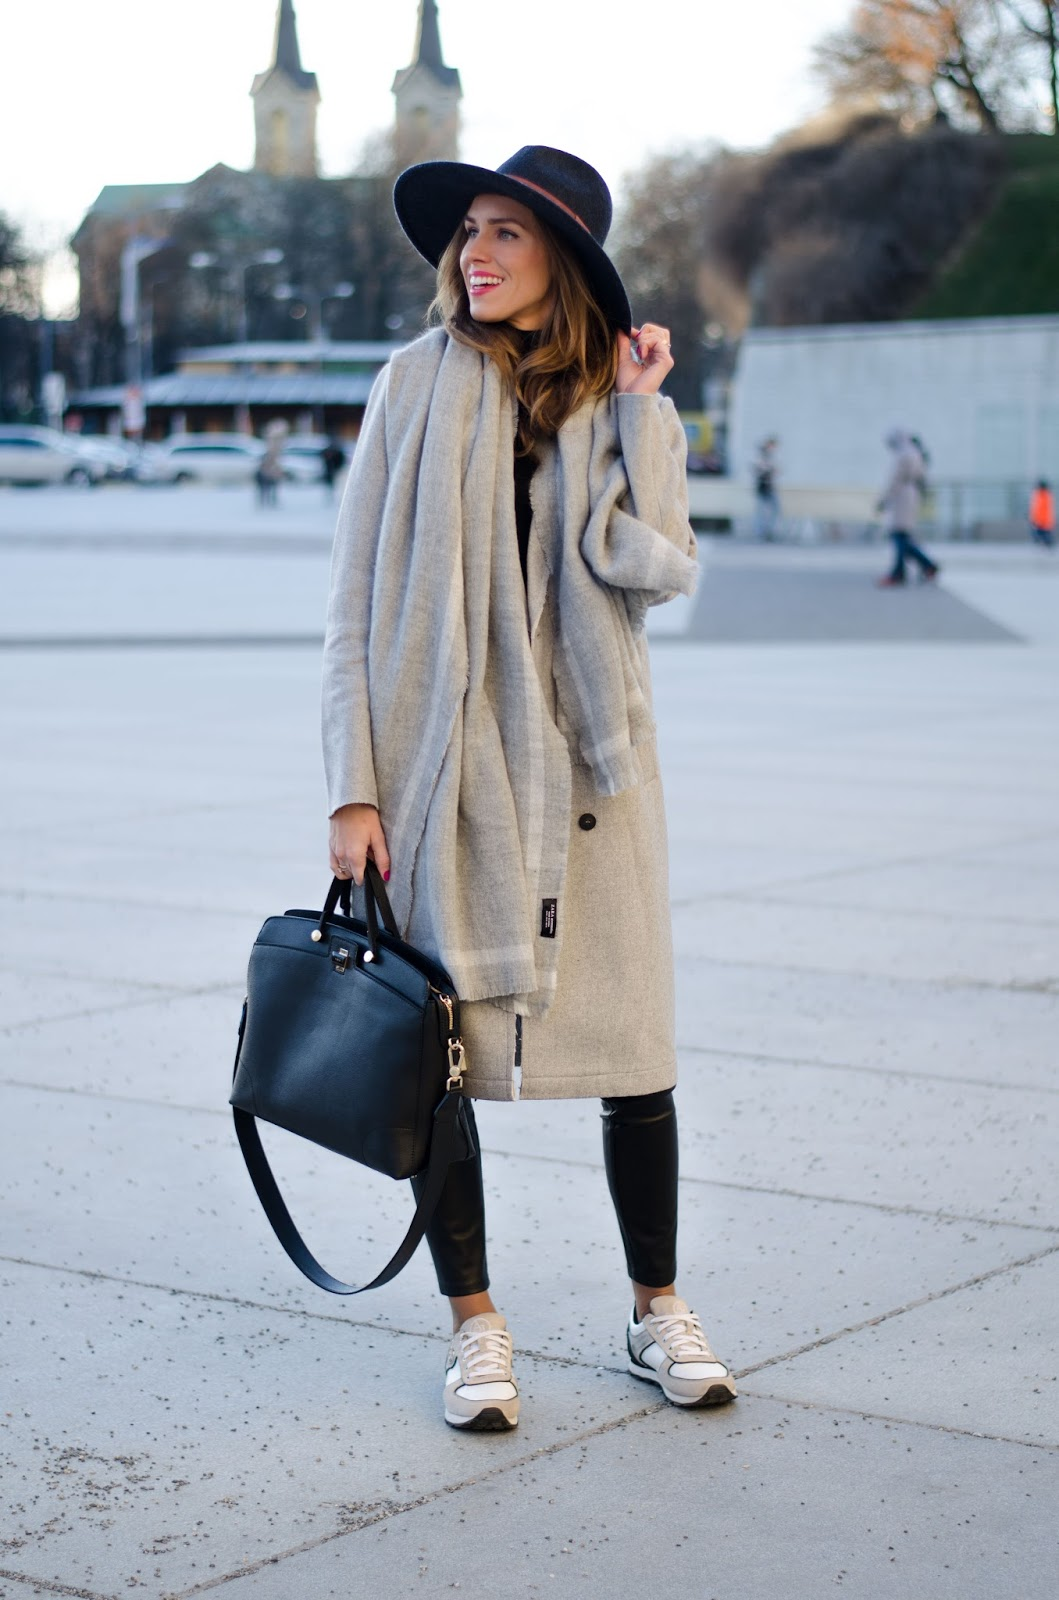 kristjaana mere gray wool coat long scarf fedora minimal winter outfit